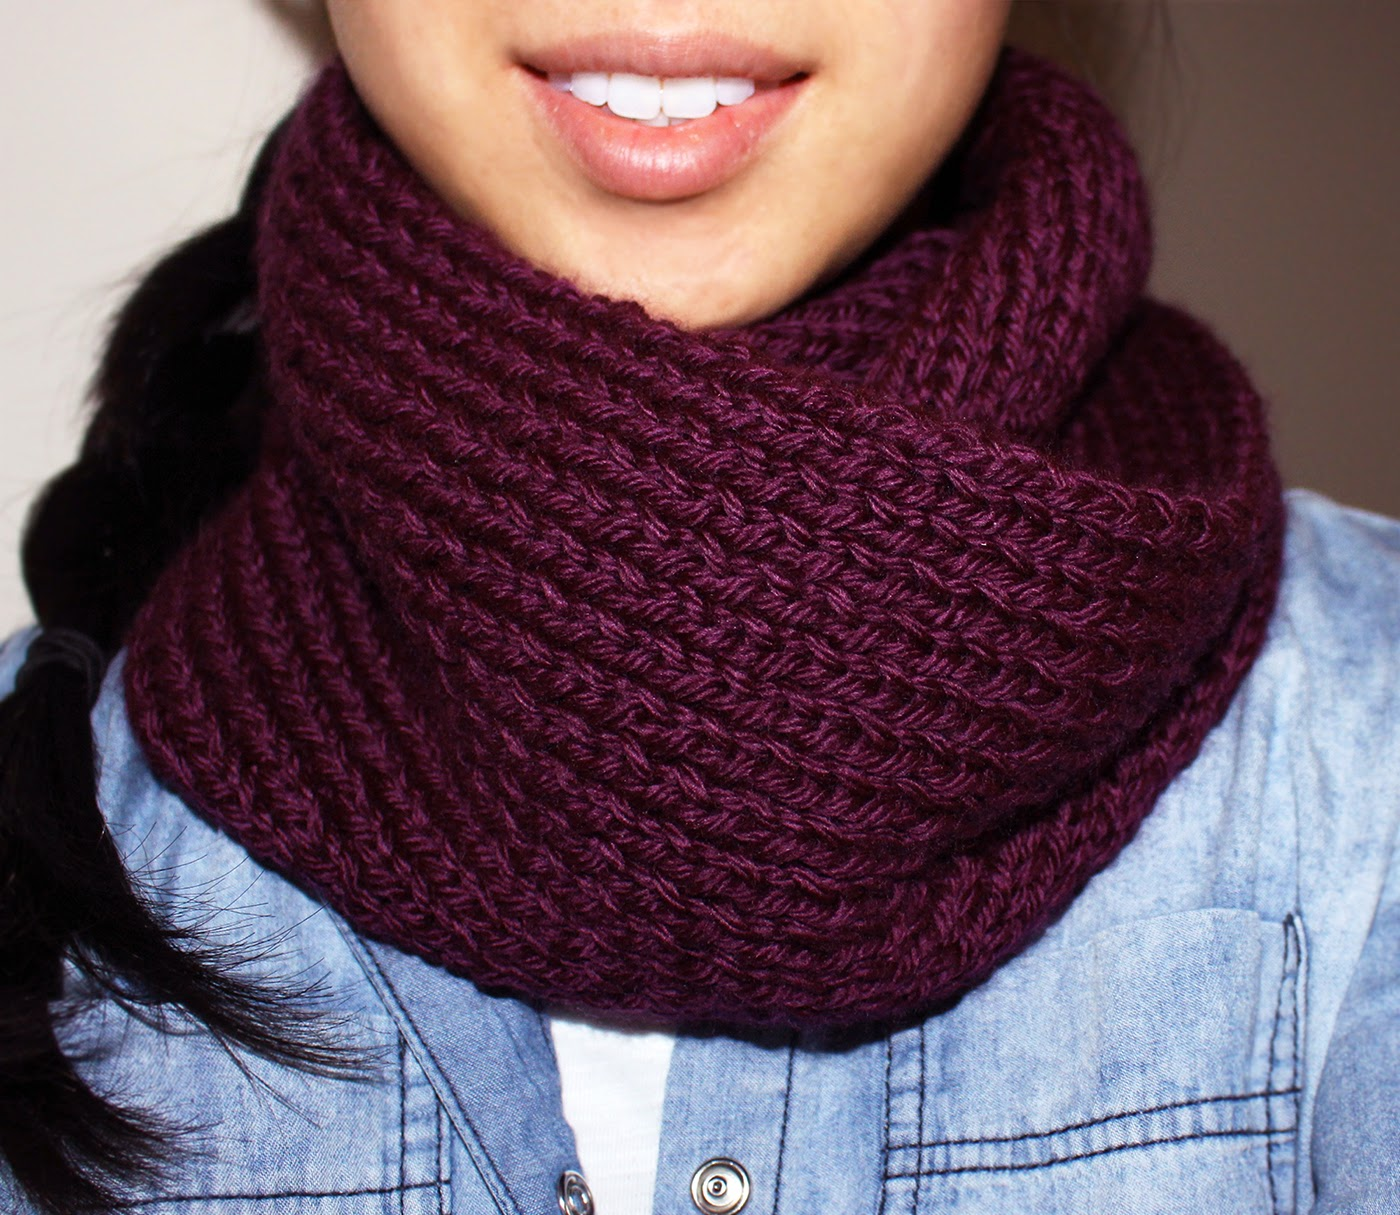 Scarf Knitting Pattern : Purllin: Acai Infinity Circle Scarf [free knitting pattern]